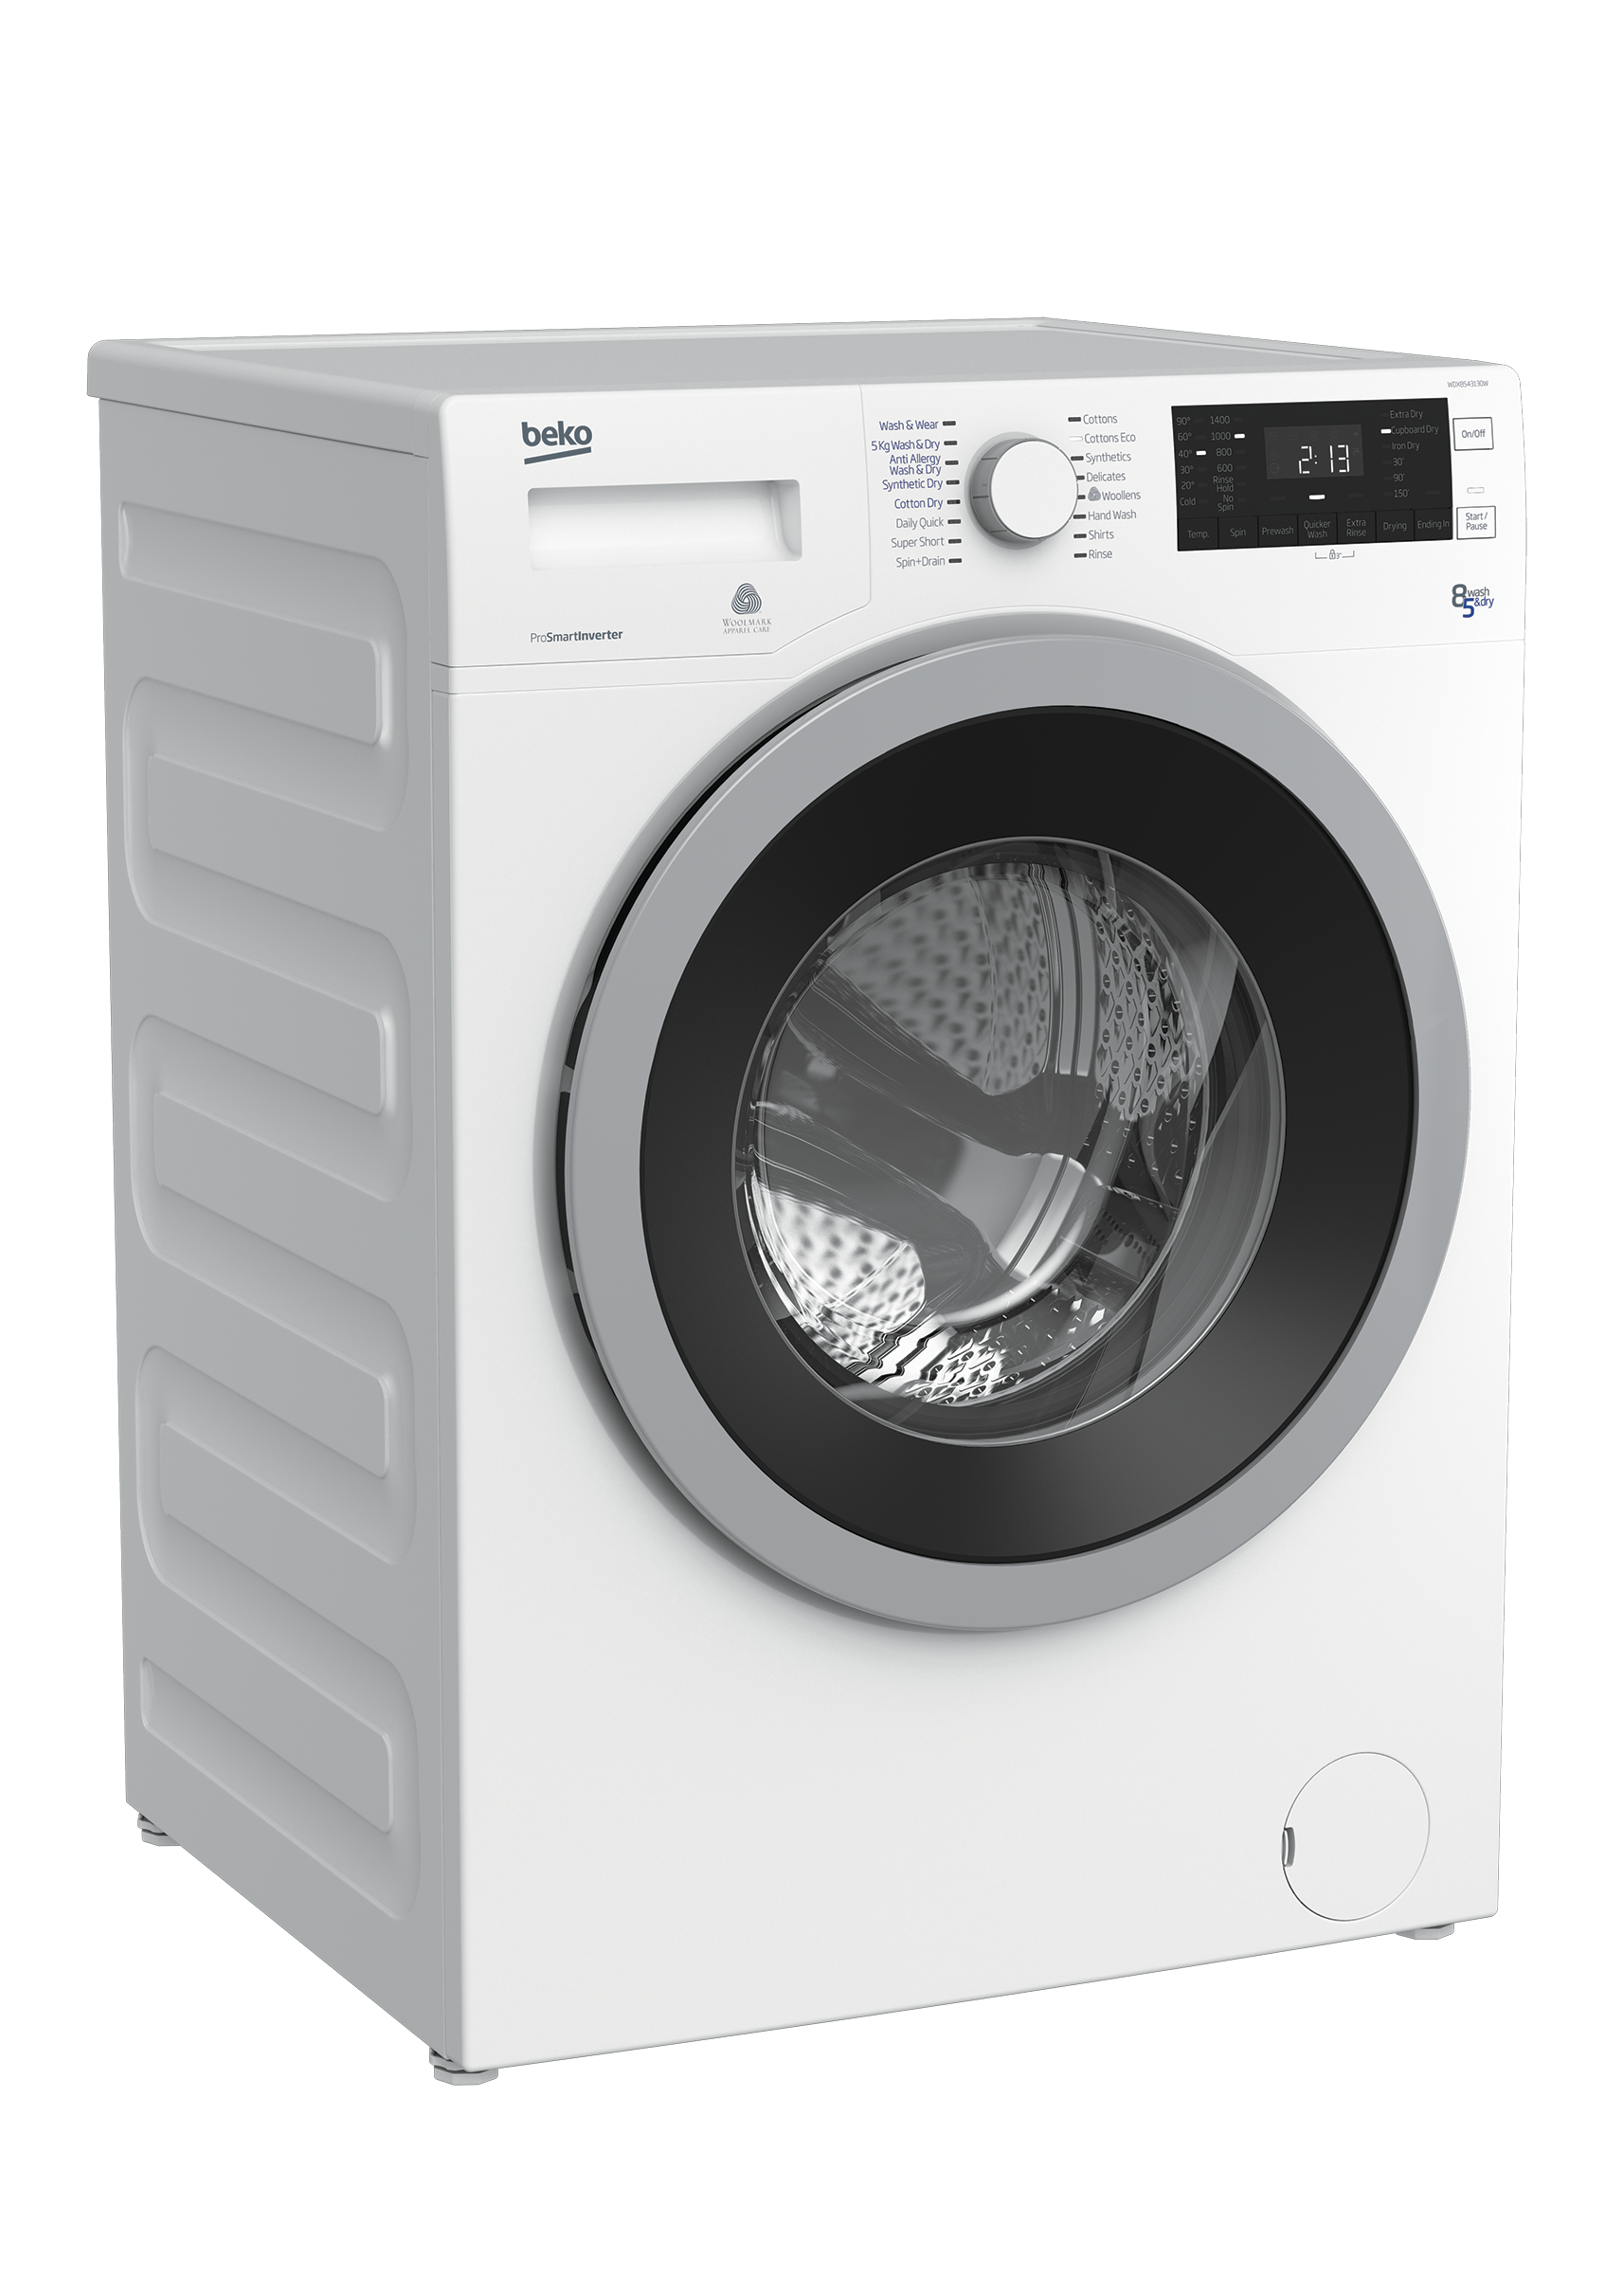 Freestanding Washer Dryer (8 kg / 5 kg, 1400 rpm) WDX8543130W